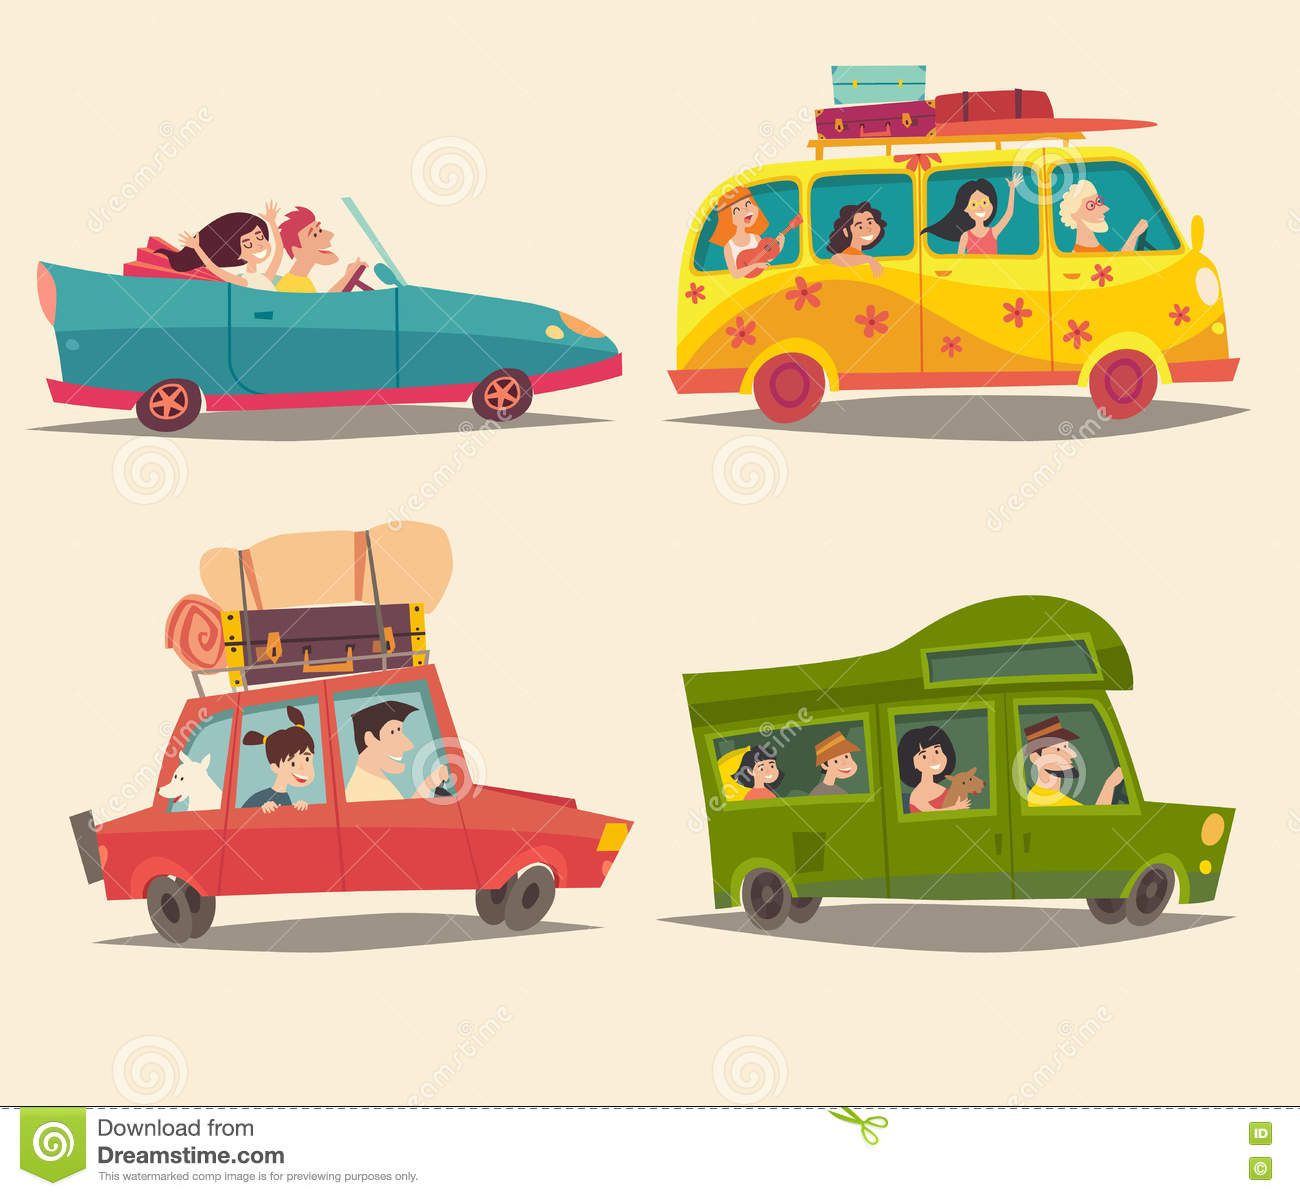 Traveling by car, Cabriolet, Van and Trailer with happy people. Summer vacation, tourism, family trip